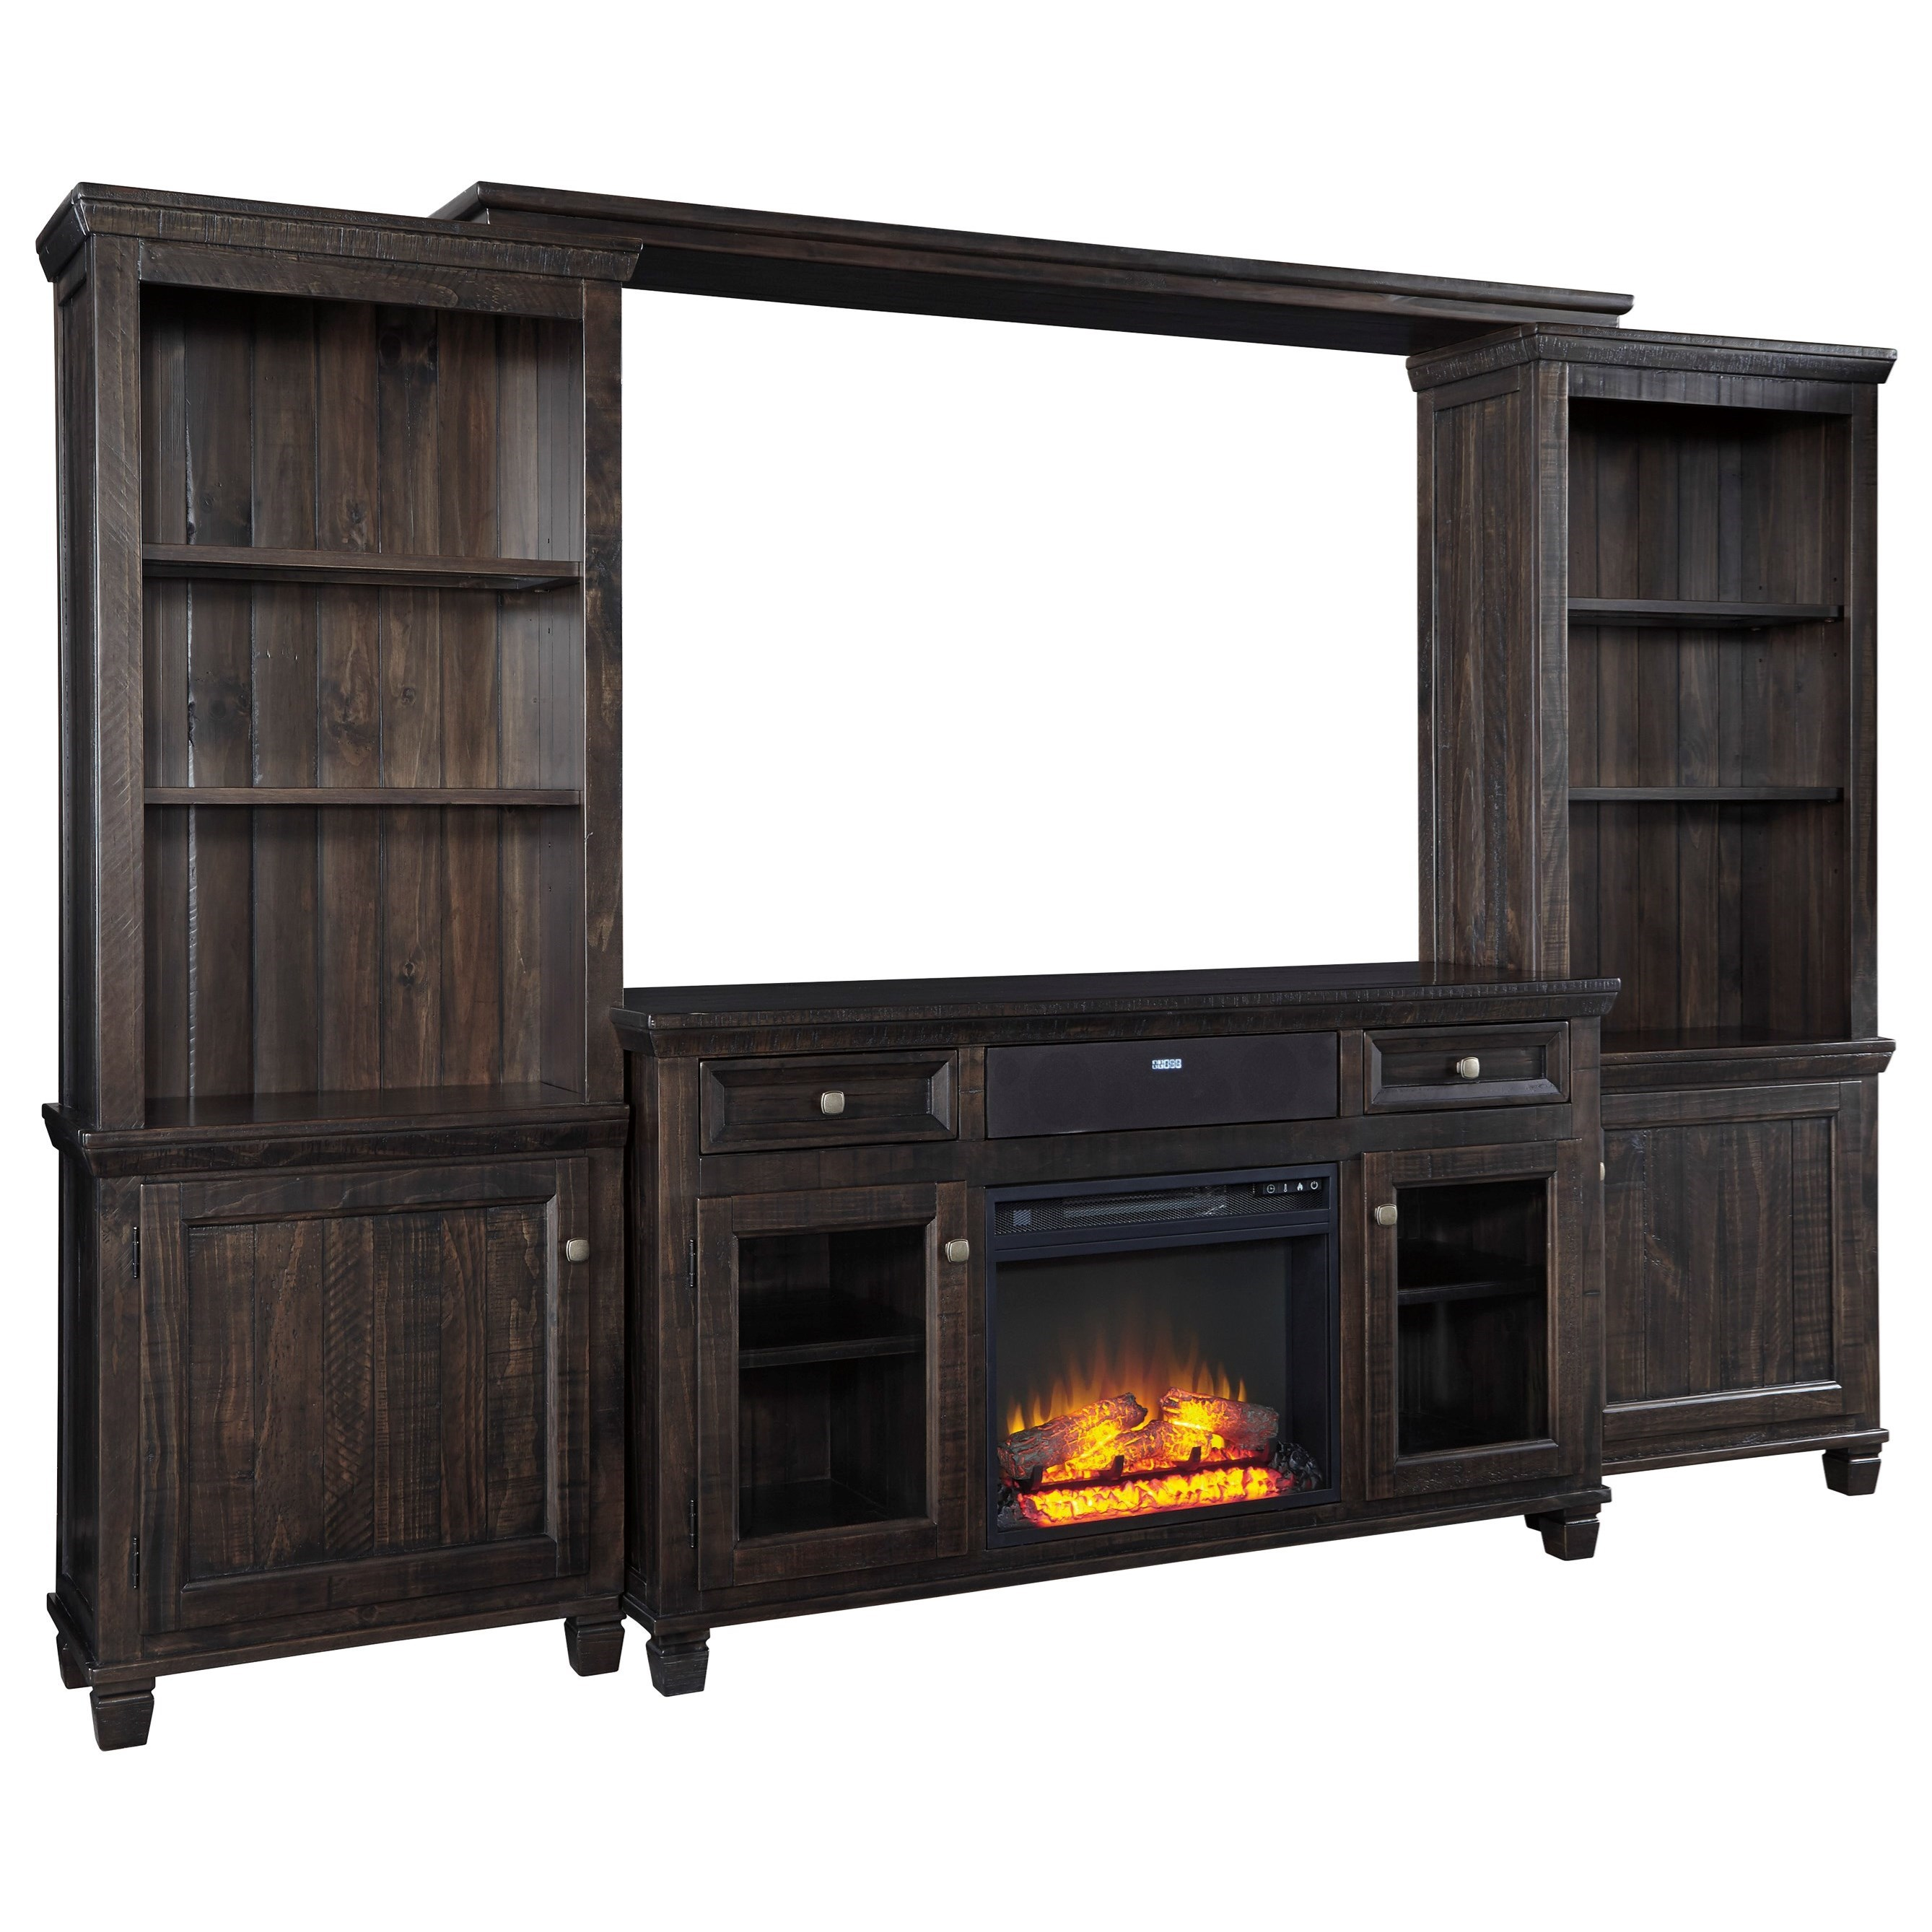 unique led small jam curved fire fireplace flame wall mounted black in effect of insert zef electric